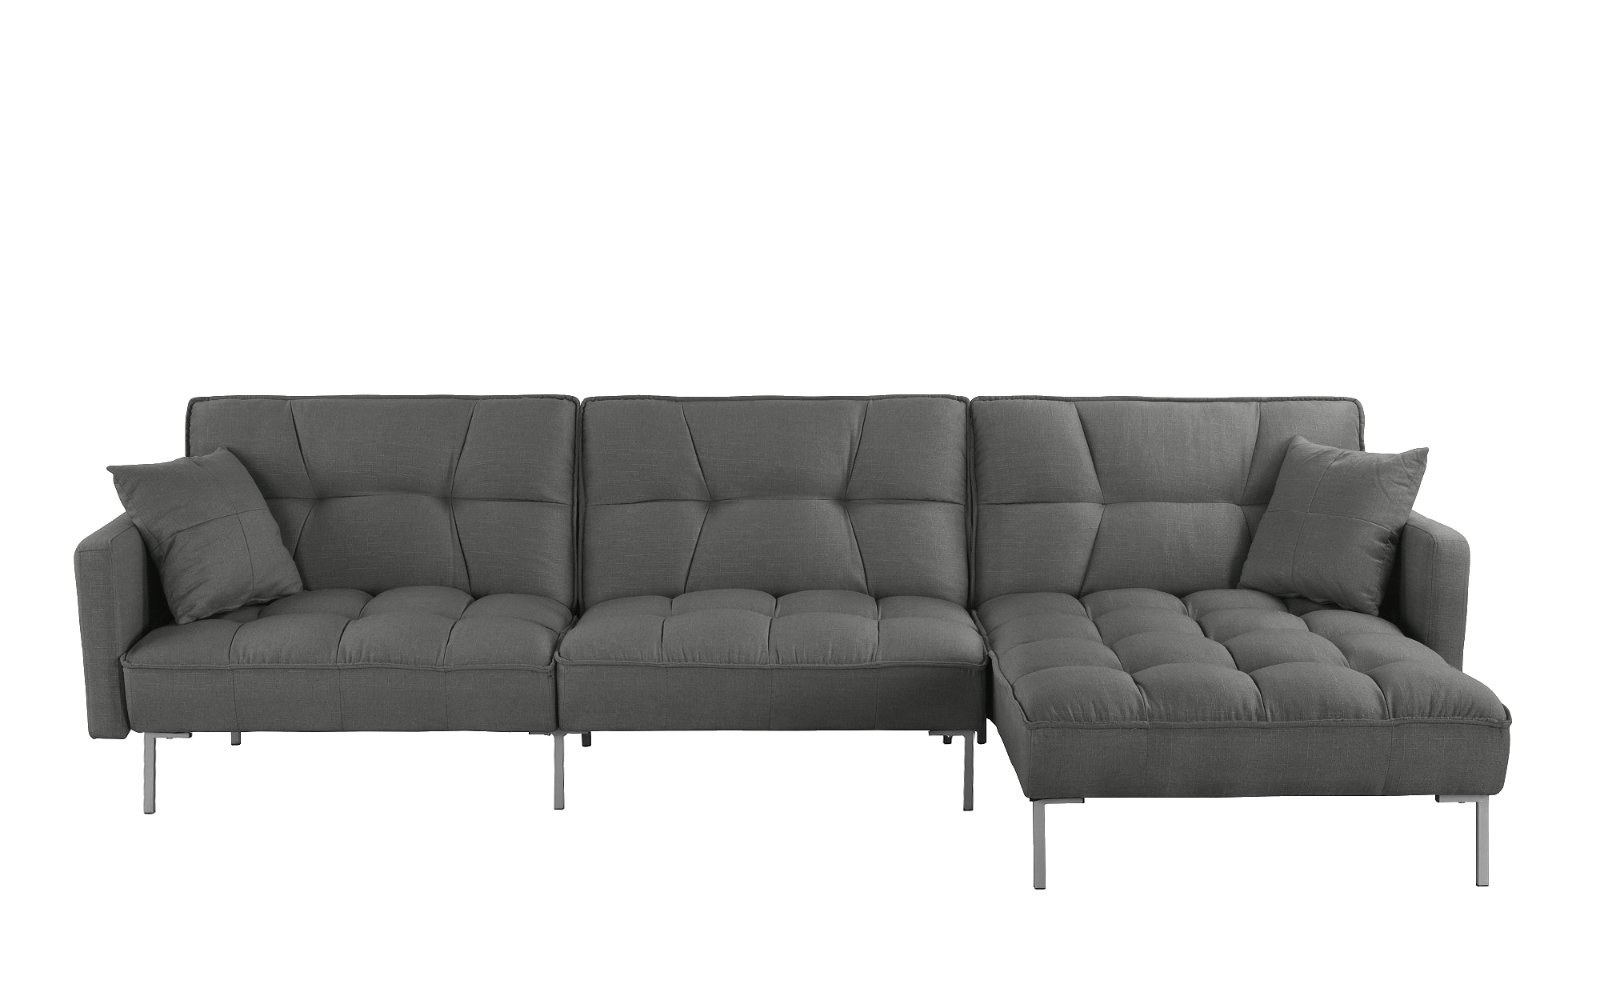 Sofamania Futon Details About Dark Grey Modern Living Room L Shape Fabric Futon Sectional Sofa 110 6